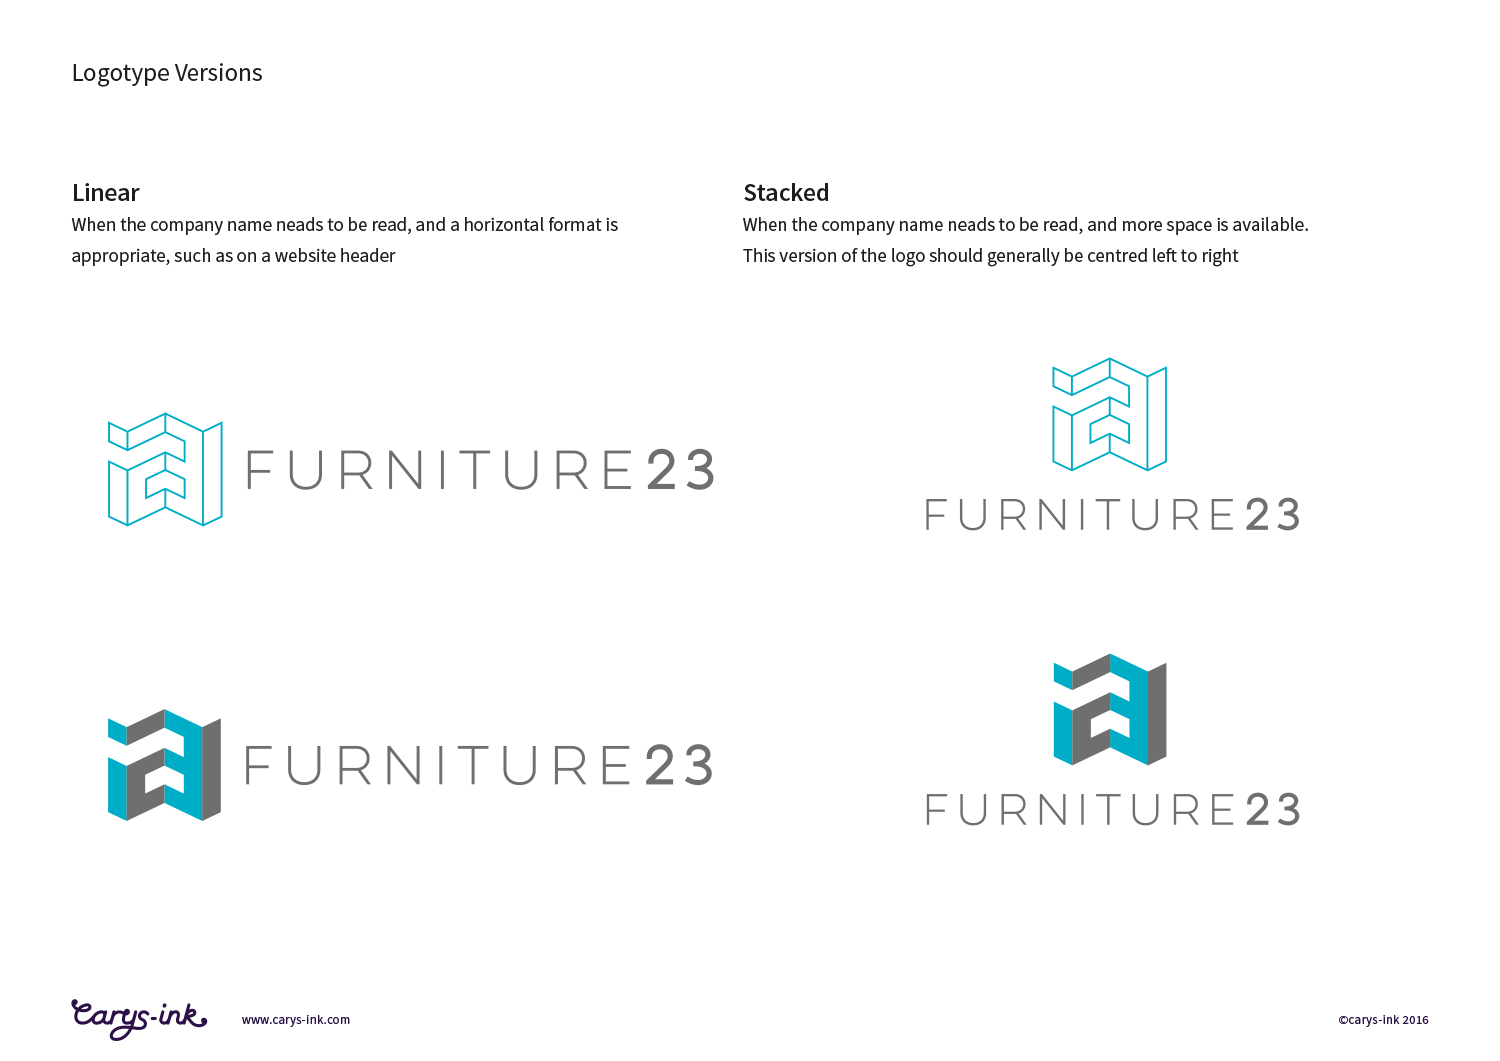 F23_Brand_Identity_Delivery_Guide-6.png